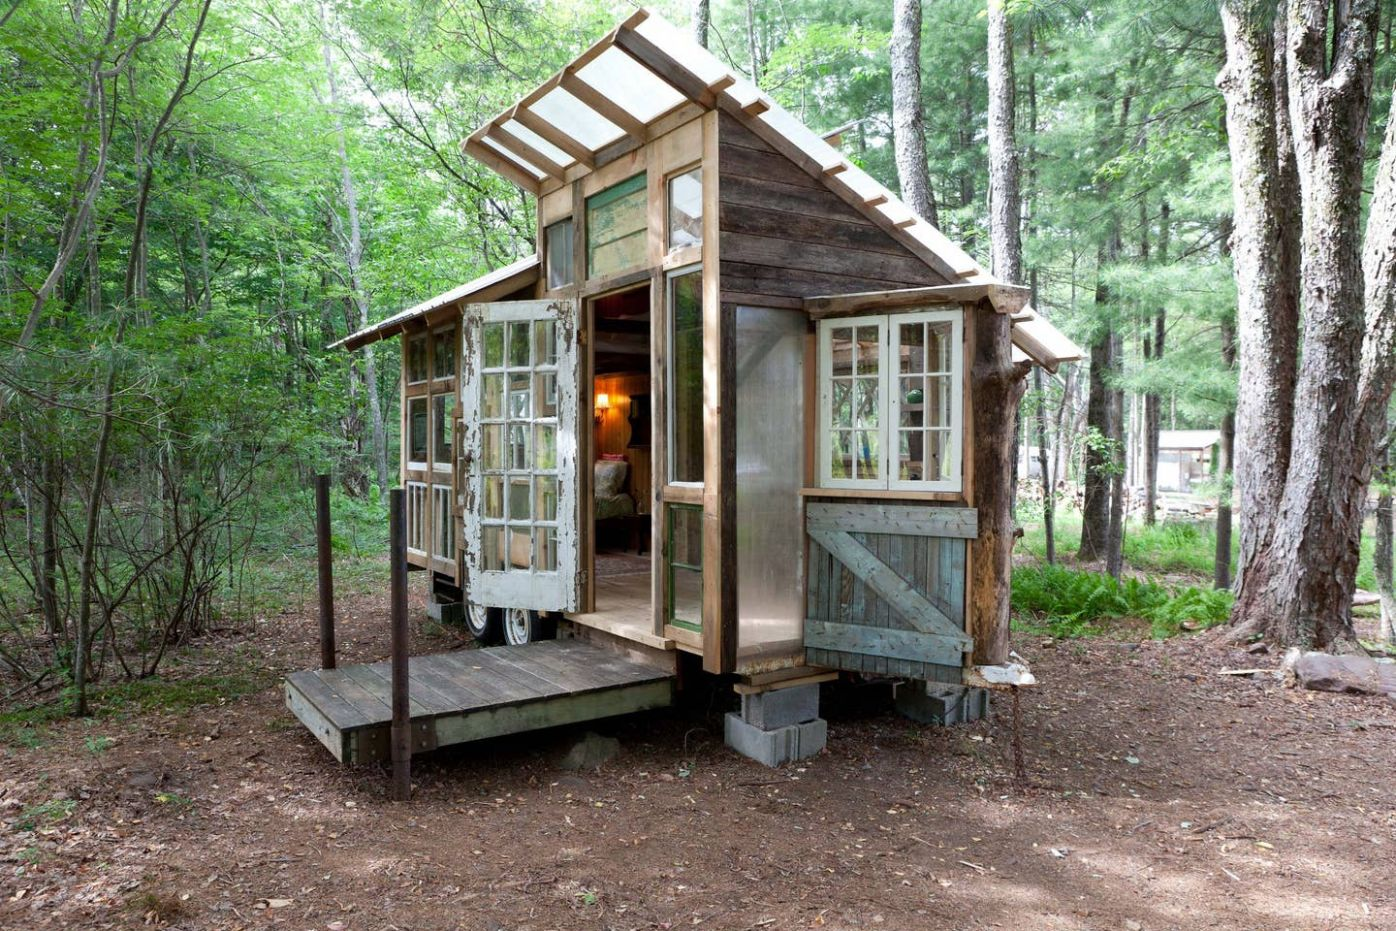 Tiny Home on Farm Upstate Catskills - Tiny houses for Rent in ...